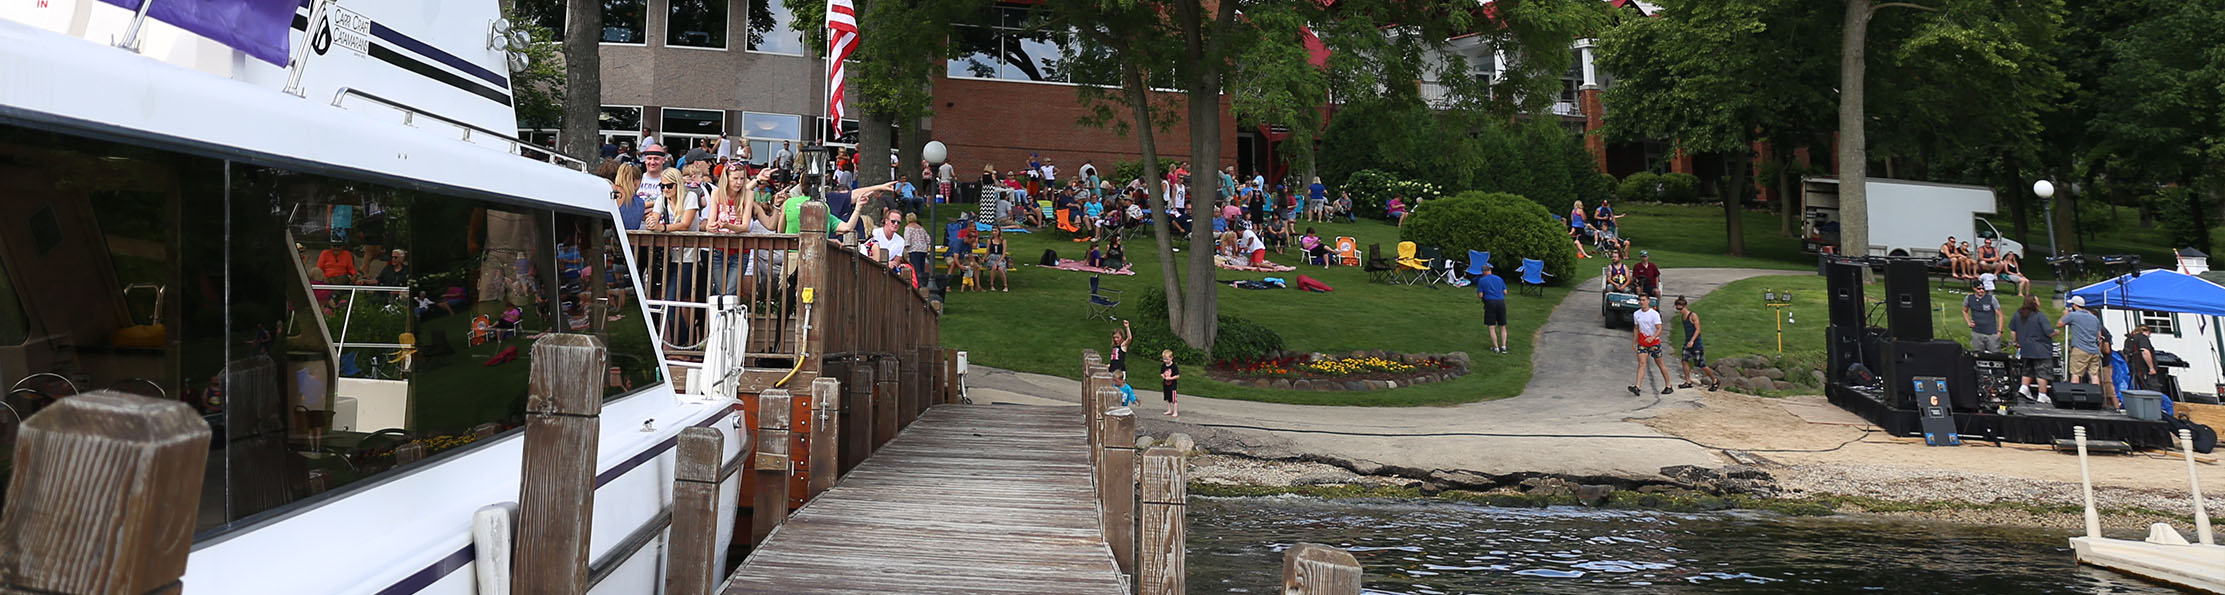 sunsplash, fourth of july party, summer activity, kid friendly, family fun, green lake wi, heidel house resort & spa